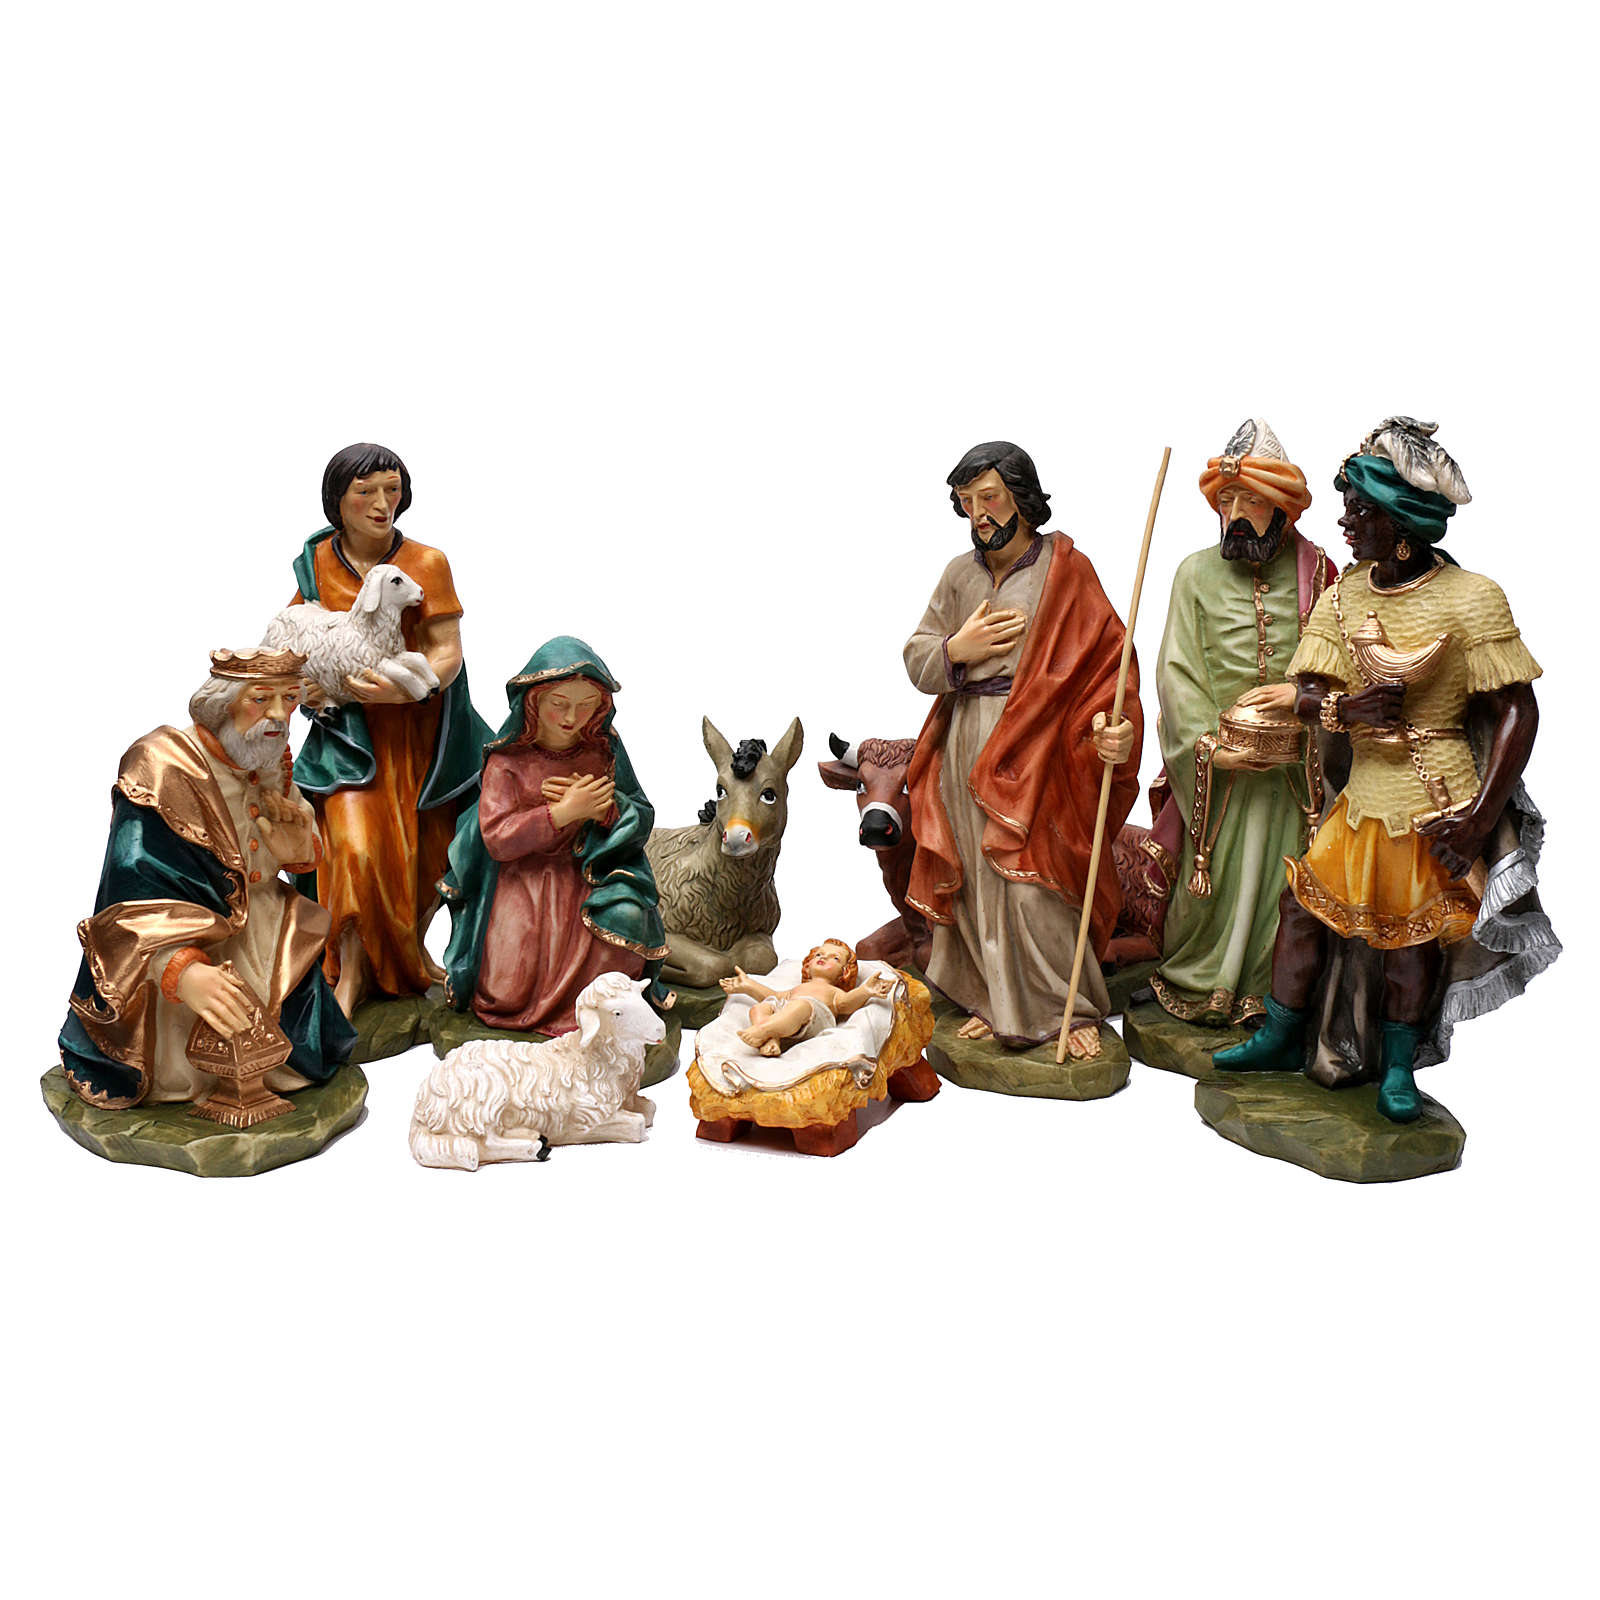 The artisan Saint Joseph coloured statue 4